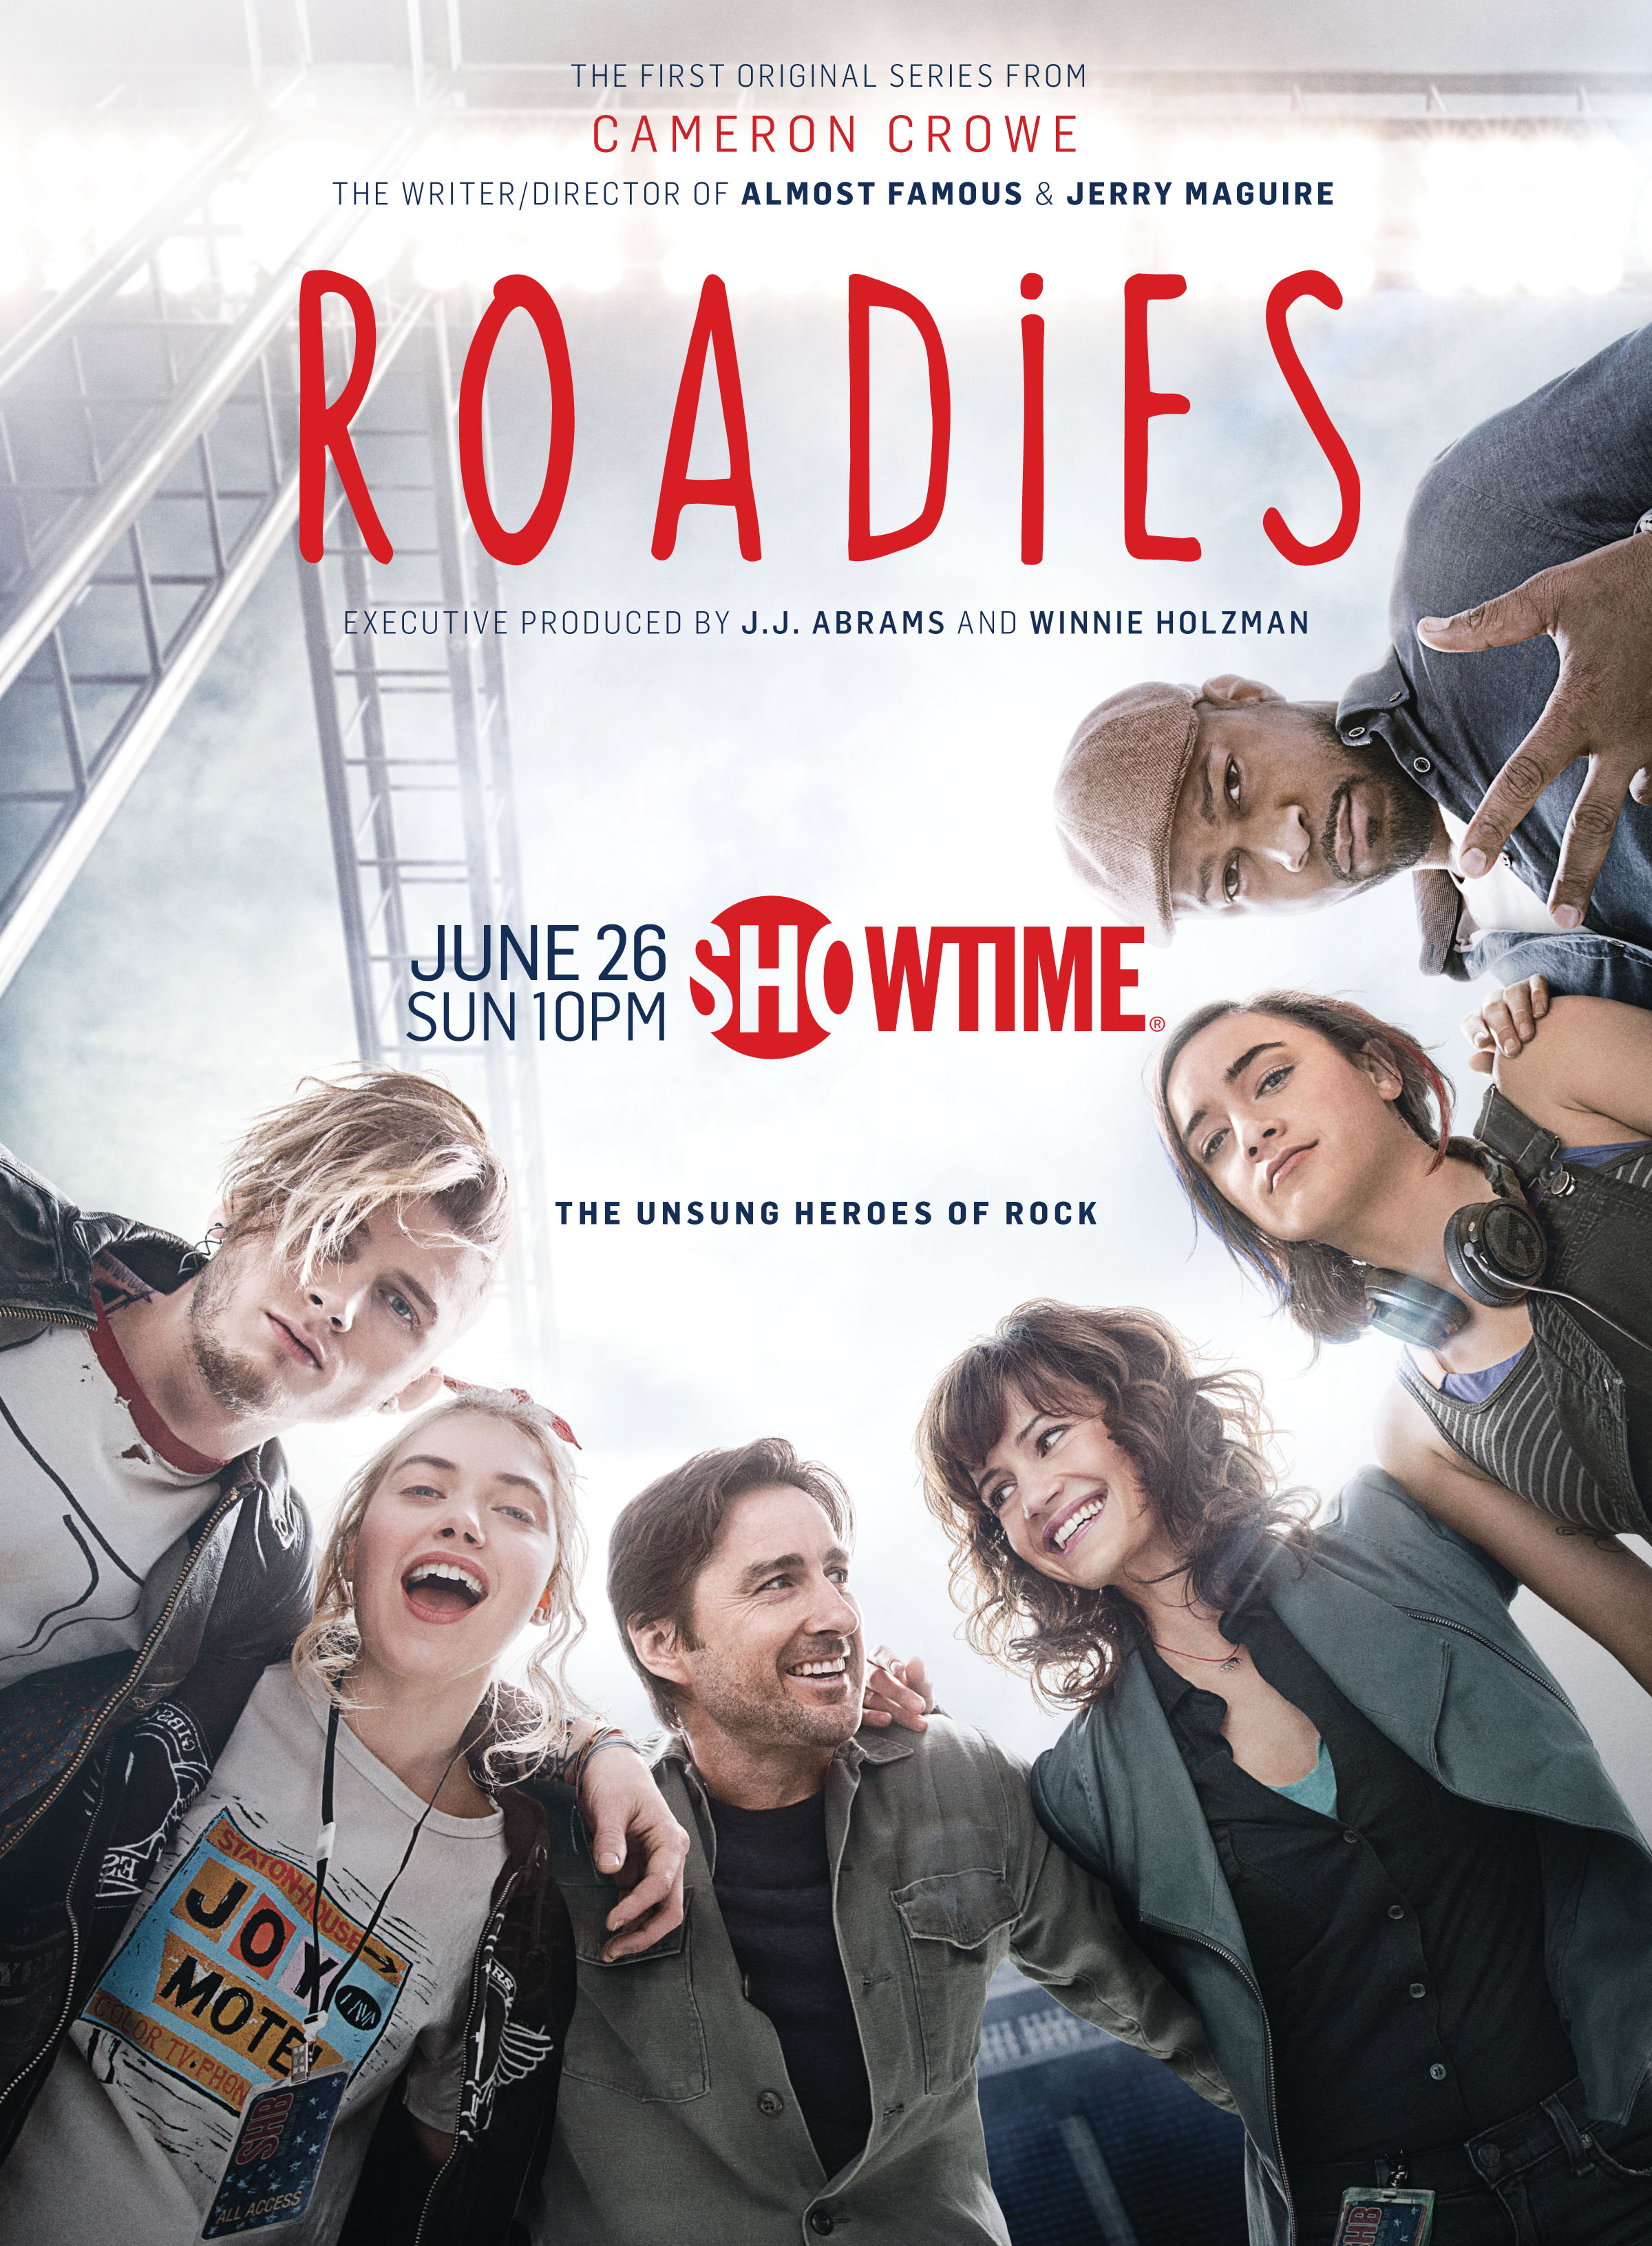 Roadies showtime poster